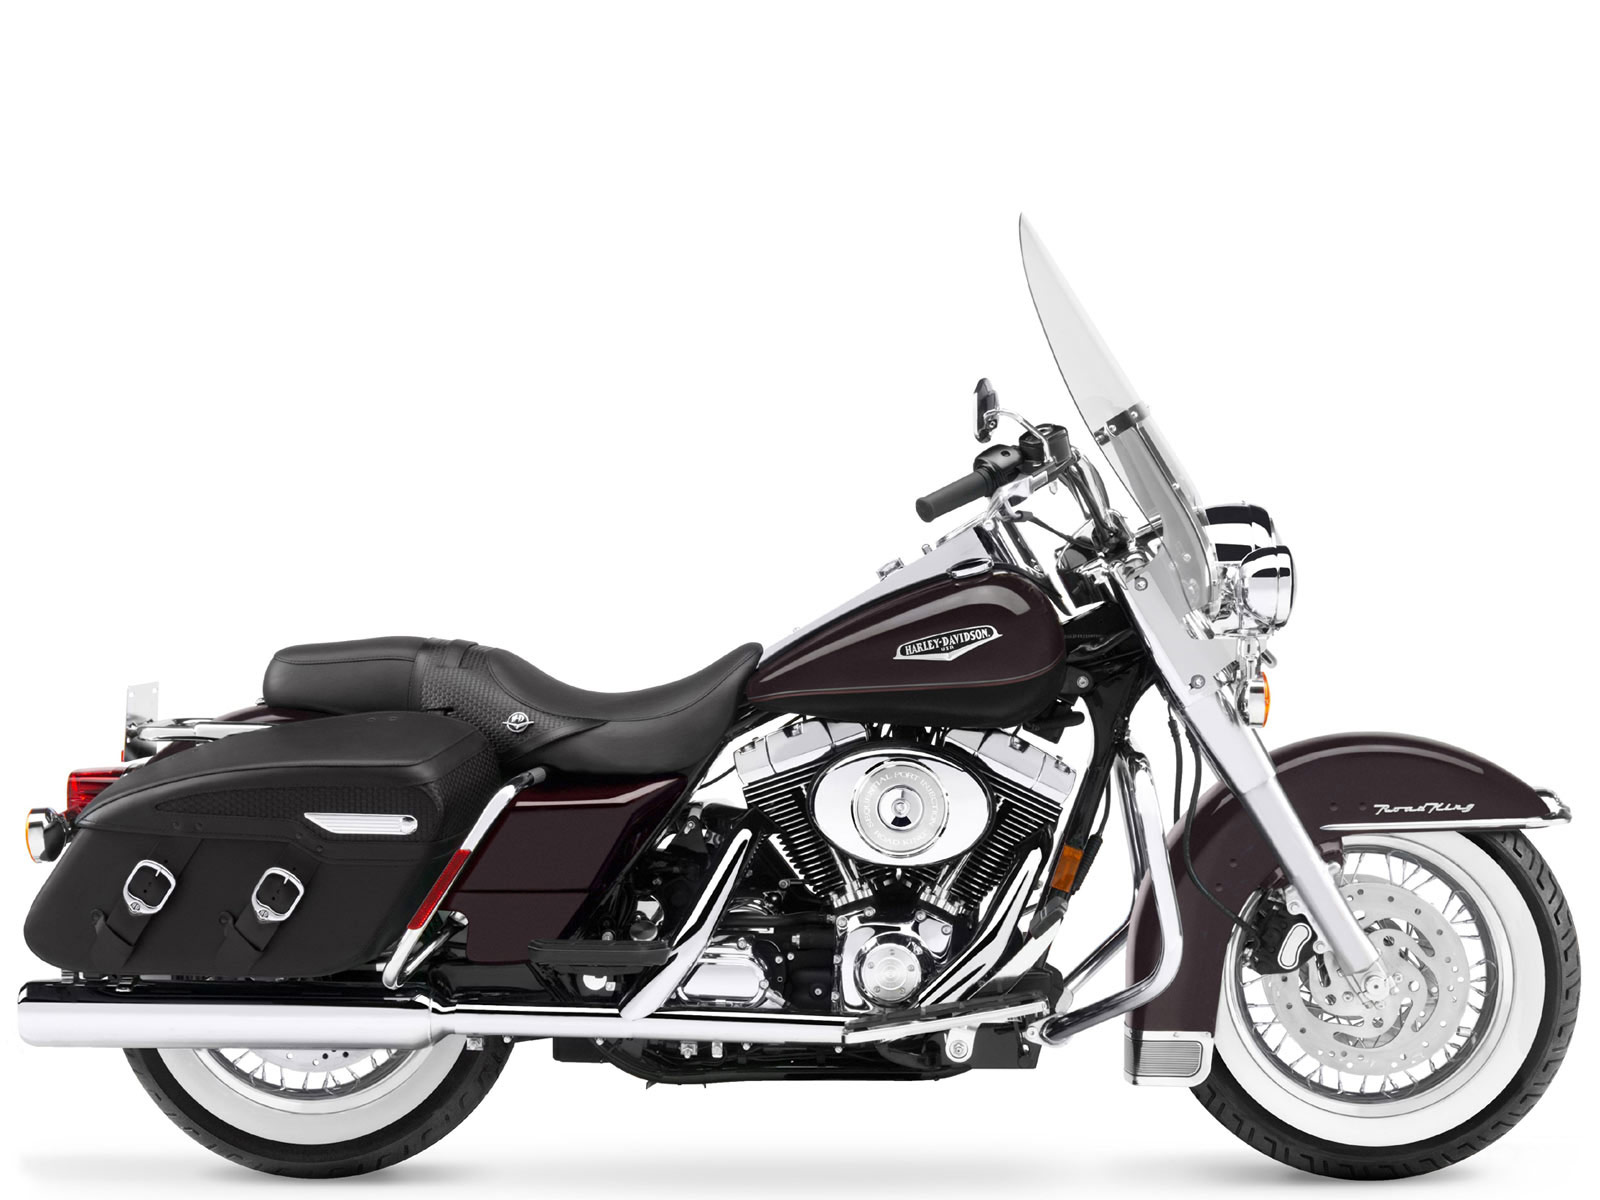 2005 Harley-Davidson Road King Classic